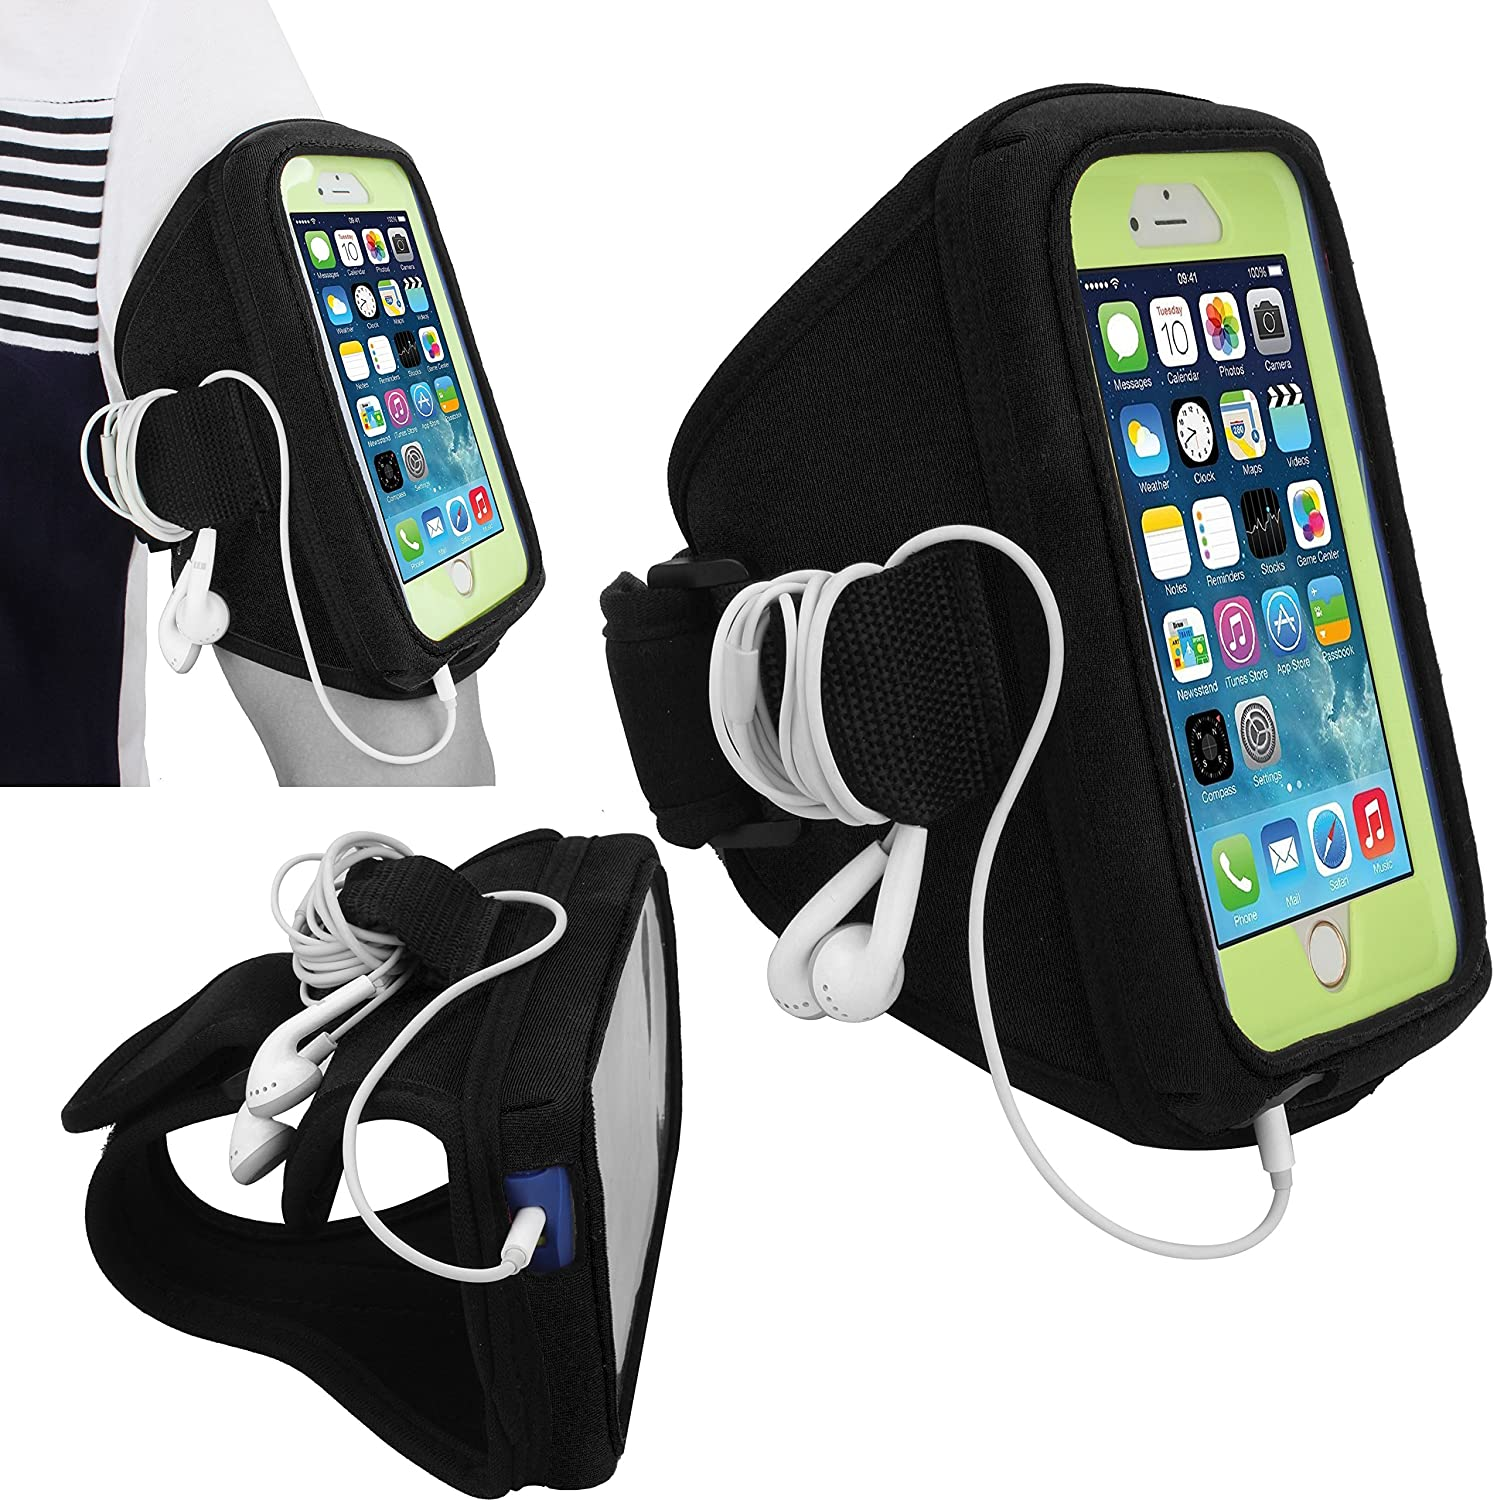 Galaxy S7 S6 S6 Edge S5 Workout Running Exercise Case for OtterBox Defender Wisdompro Armband for iPhone 6 6s Commuter Series or Lifeproof Cases with Key Holder Headphones Organizer-Black SM